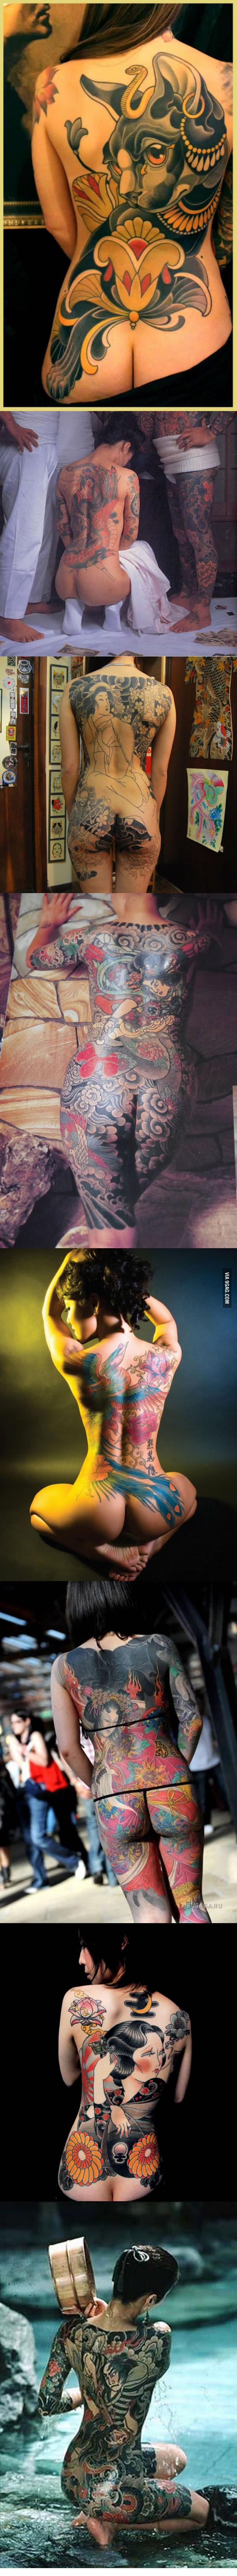 Beautiful Japanese women with Irezumi (Traditional Japanese tattooing)